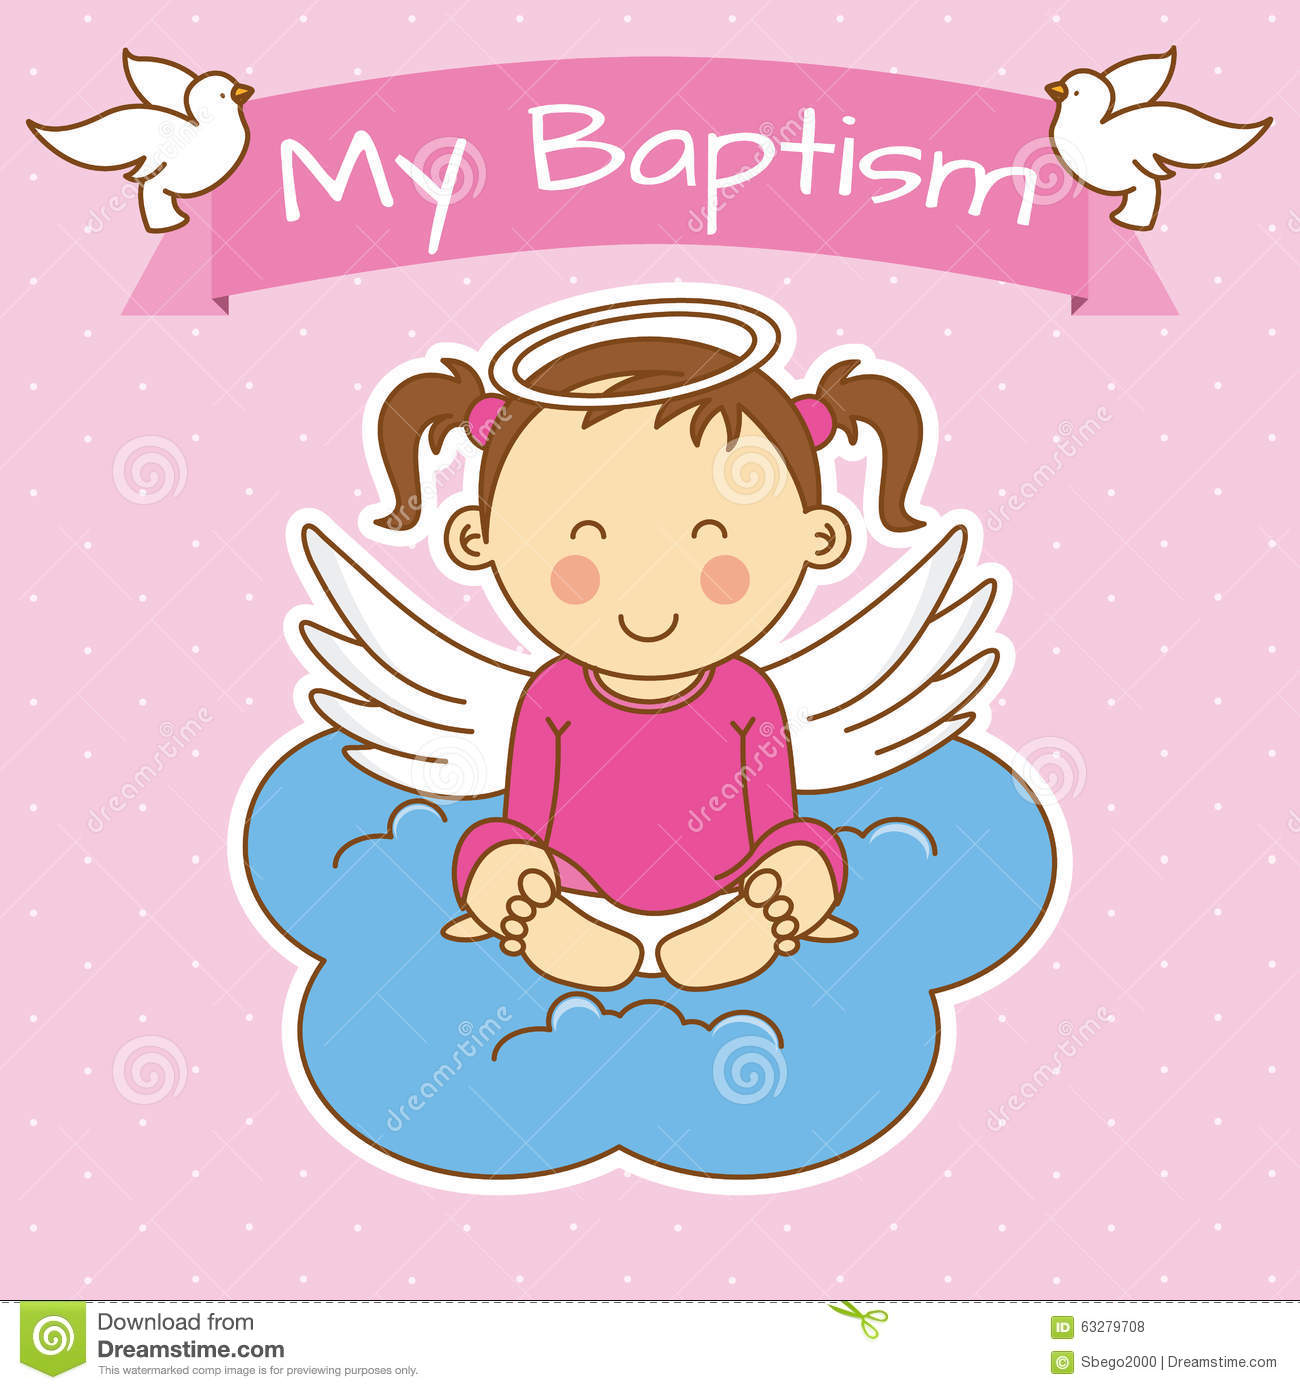 Girl Baptism Stock Vector - Image: 63279708